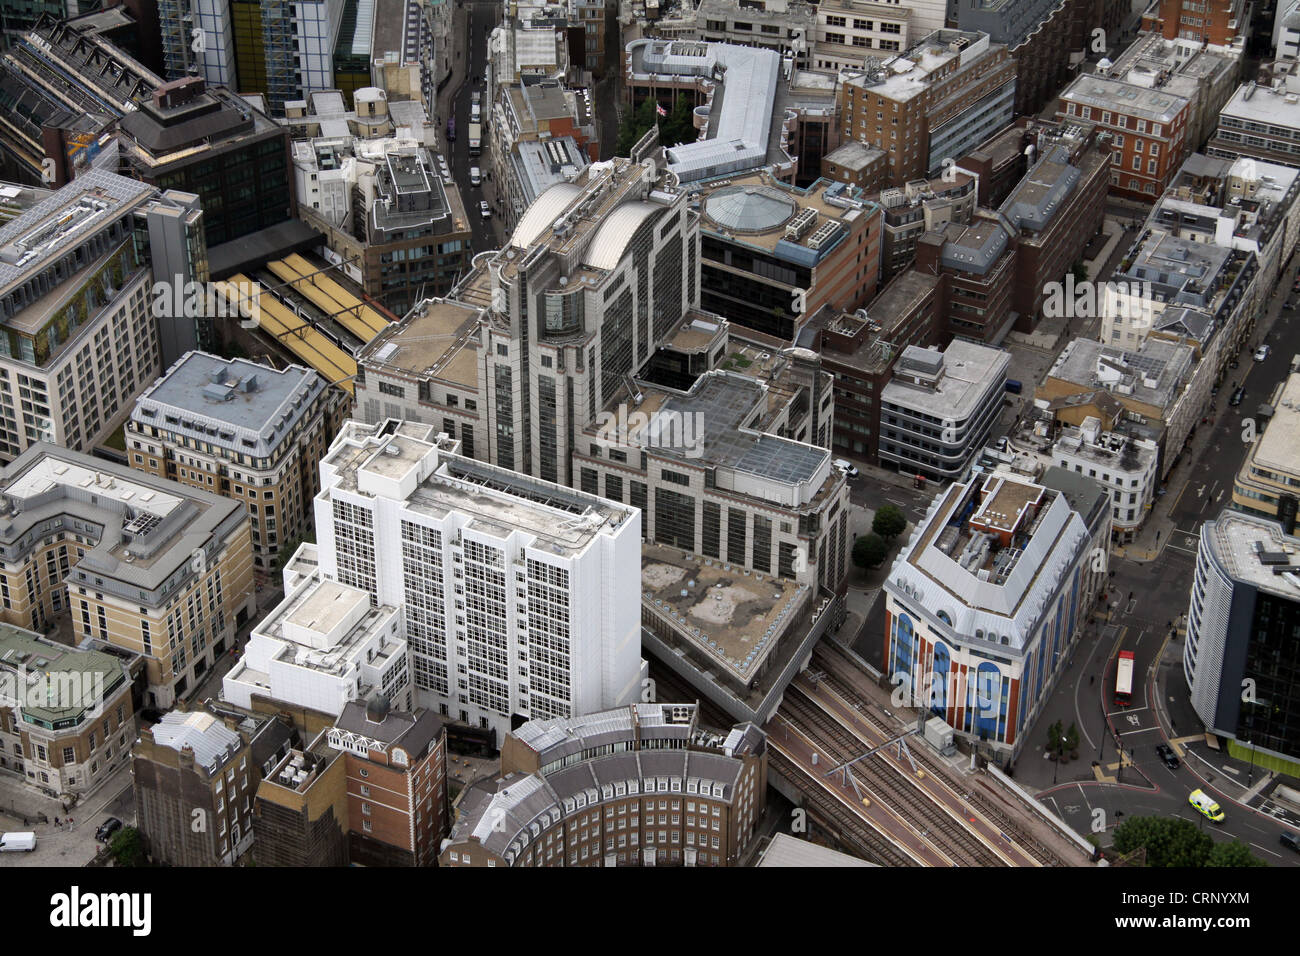 aerial view of approach to Fenchurch Street Station, with Cooper's Row and Vine Street, London EC3 - Stock Image